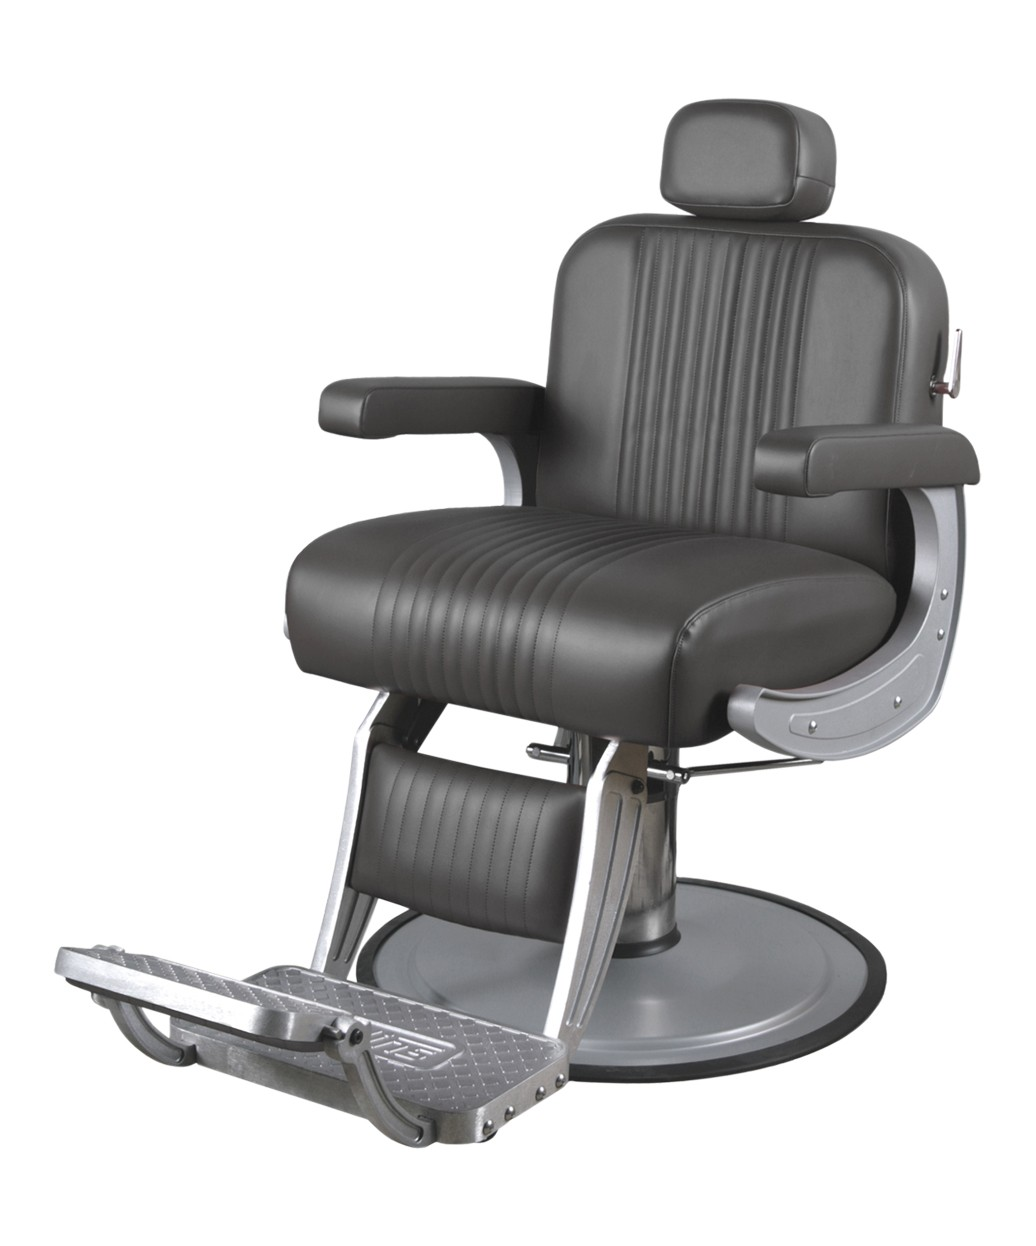 B40 Cobalt Barber Chair, B Series